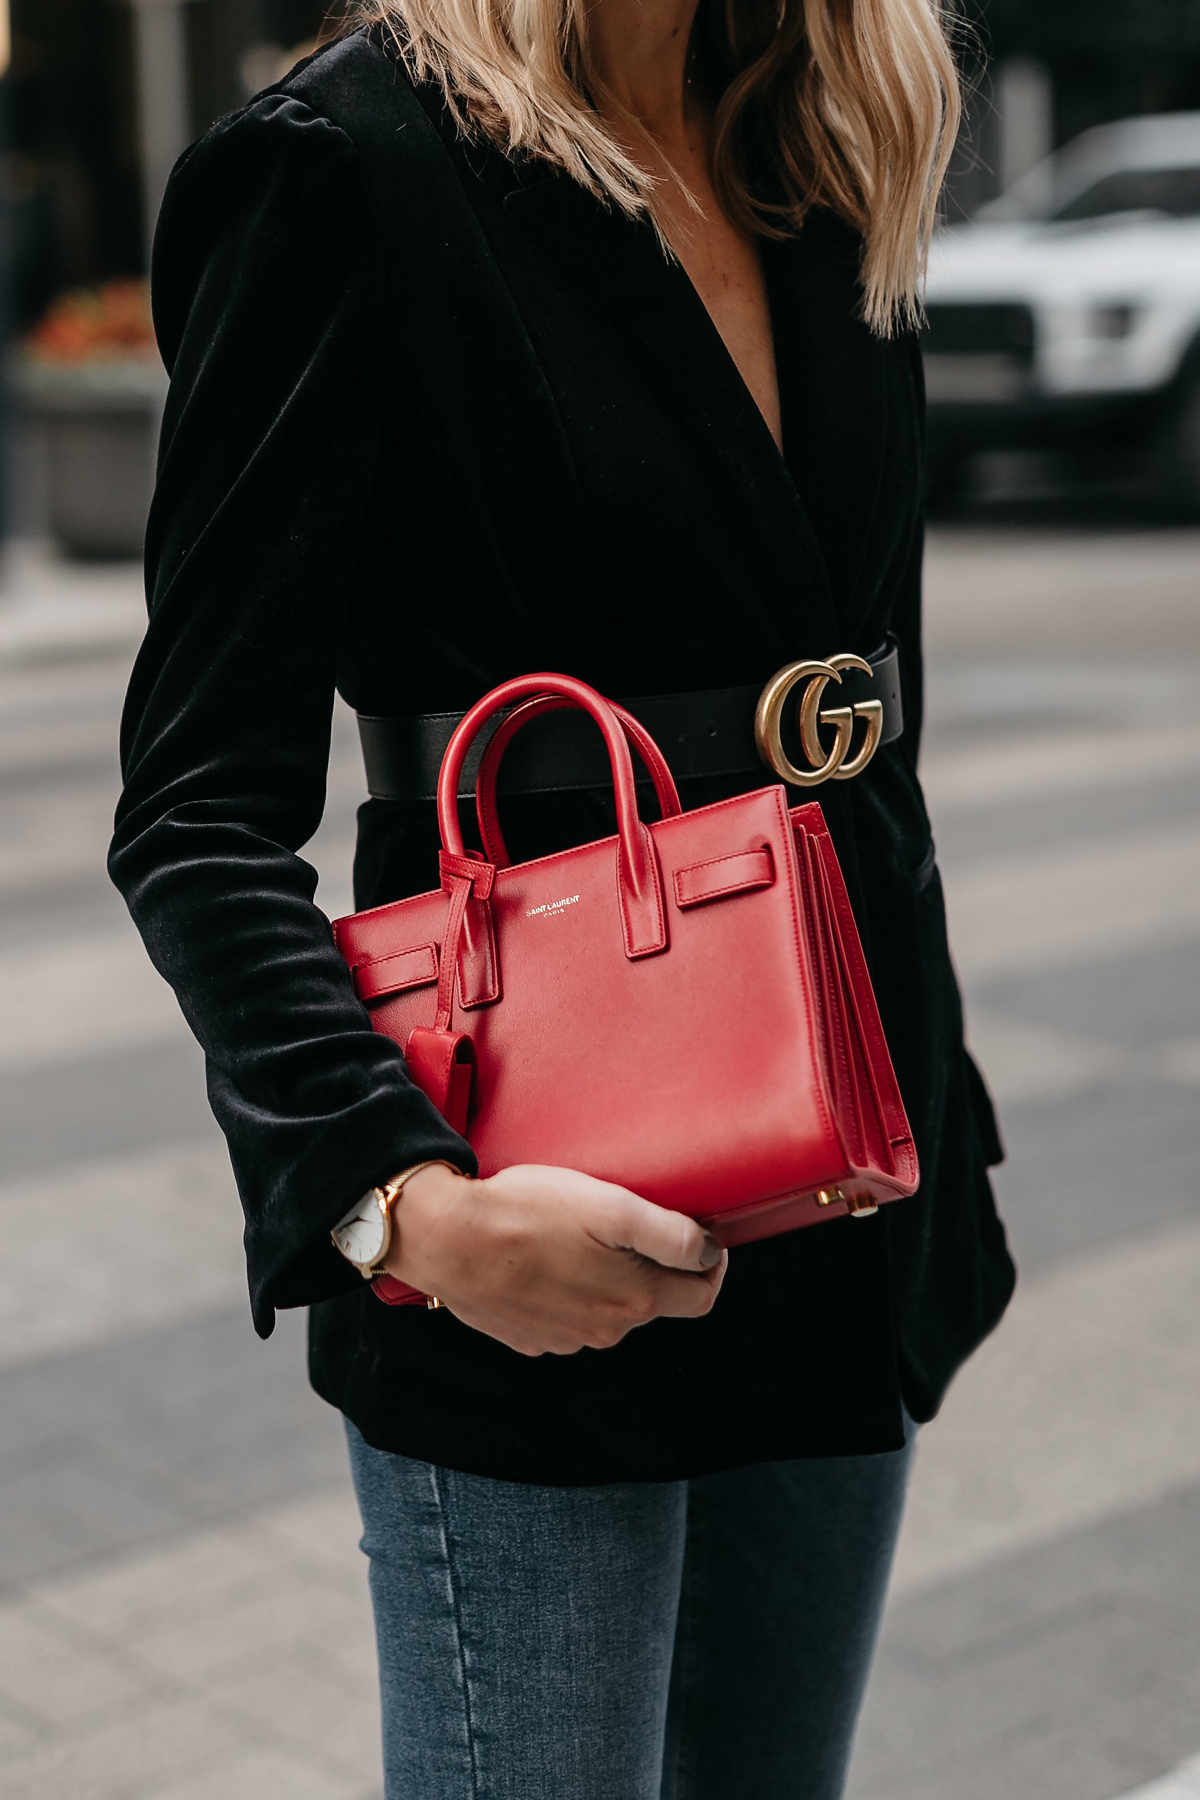 Saint Laurent Red Sac De Jour Black Velvet Blazer Gucci Marmont Belt Fashion Jackson Dallas Blogger Fashion Blogger Street Style